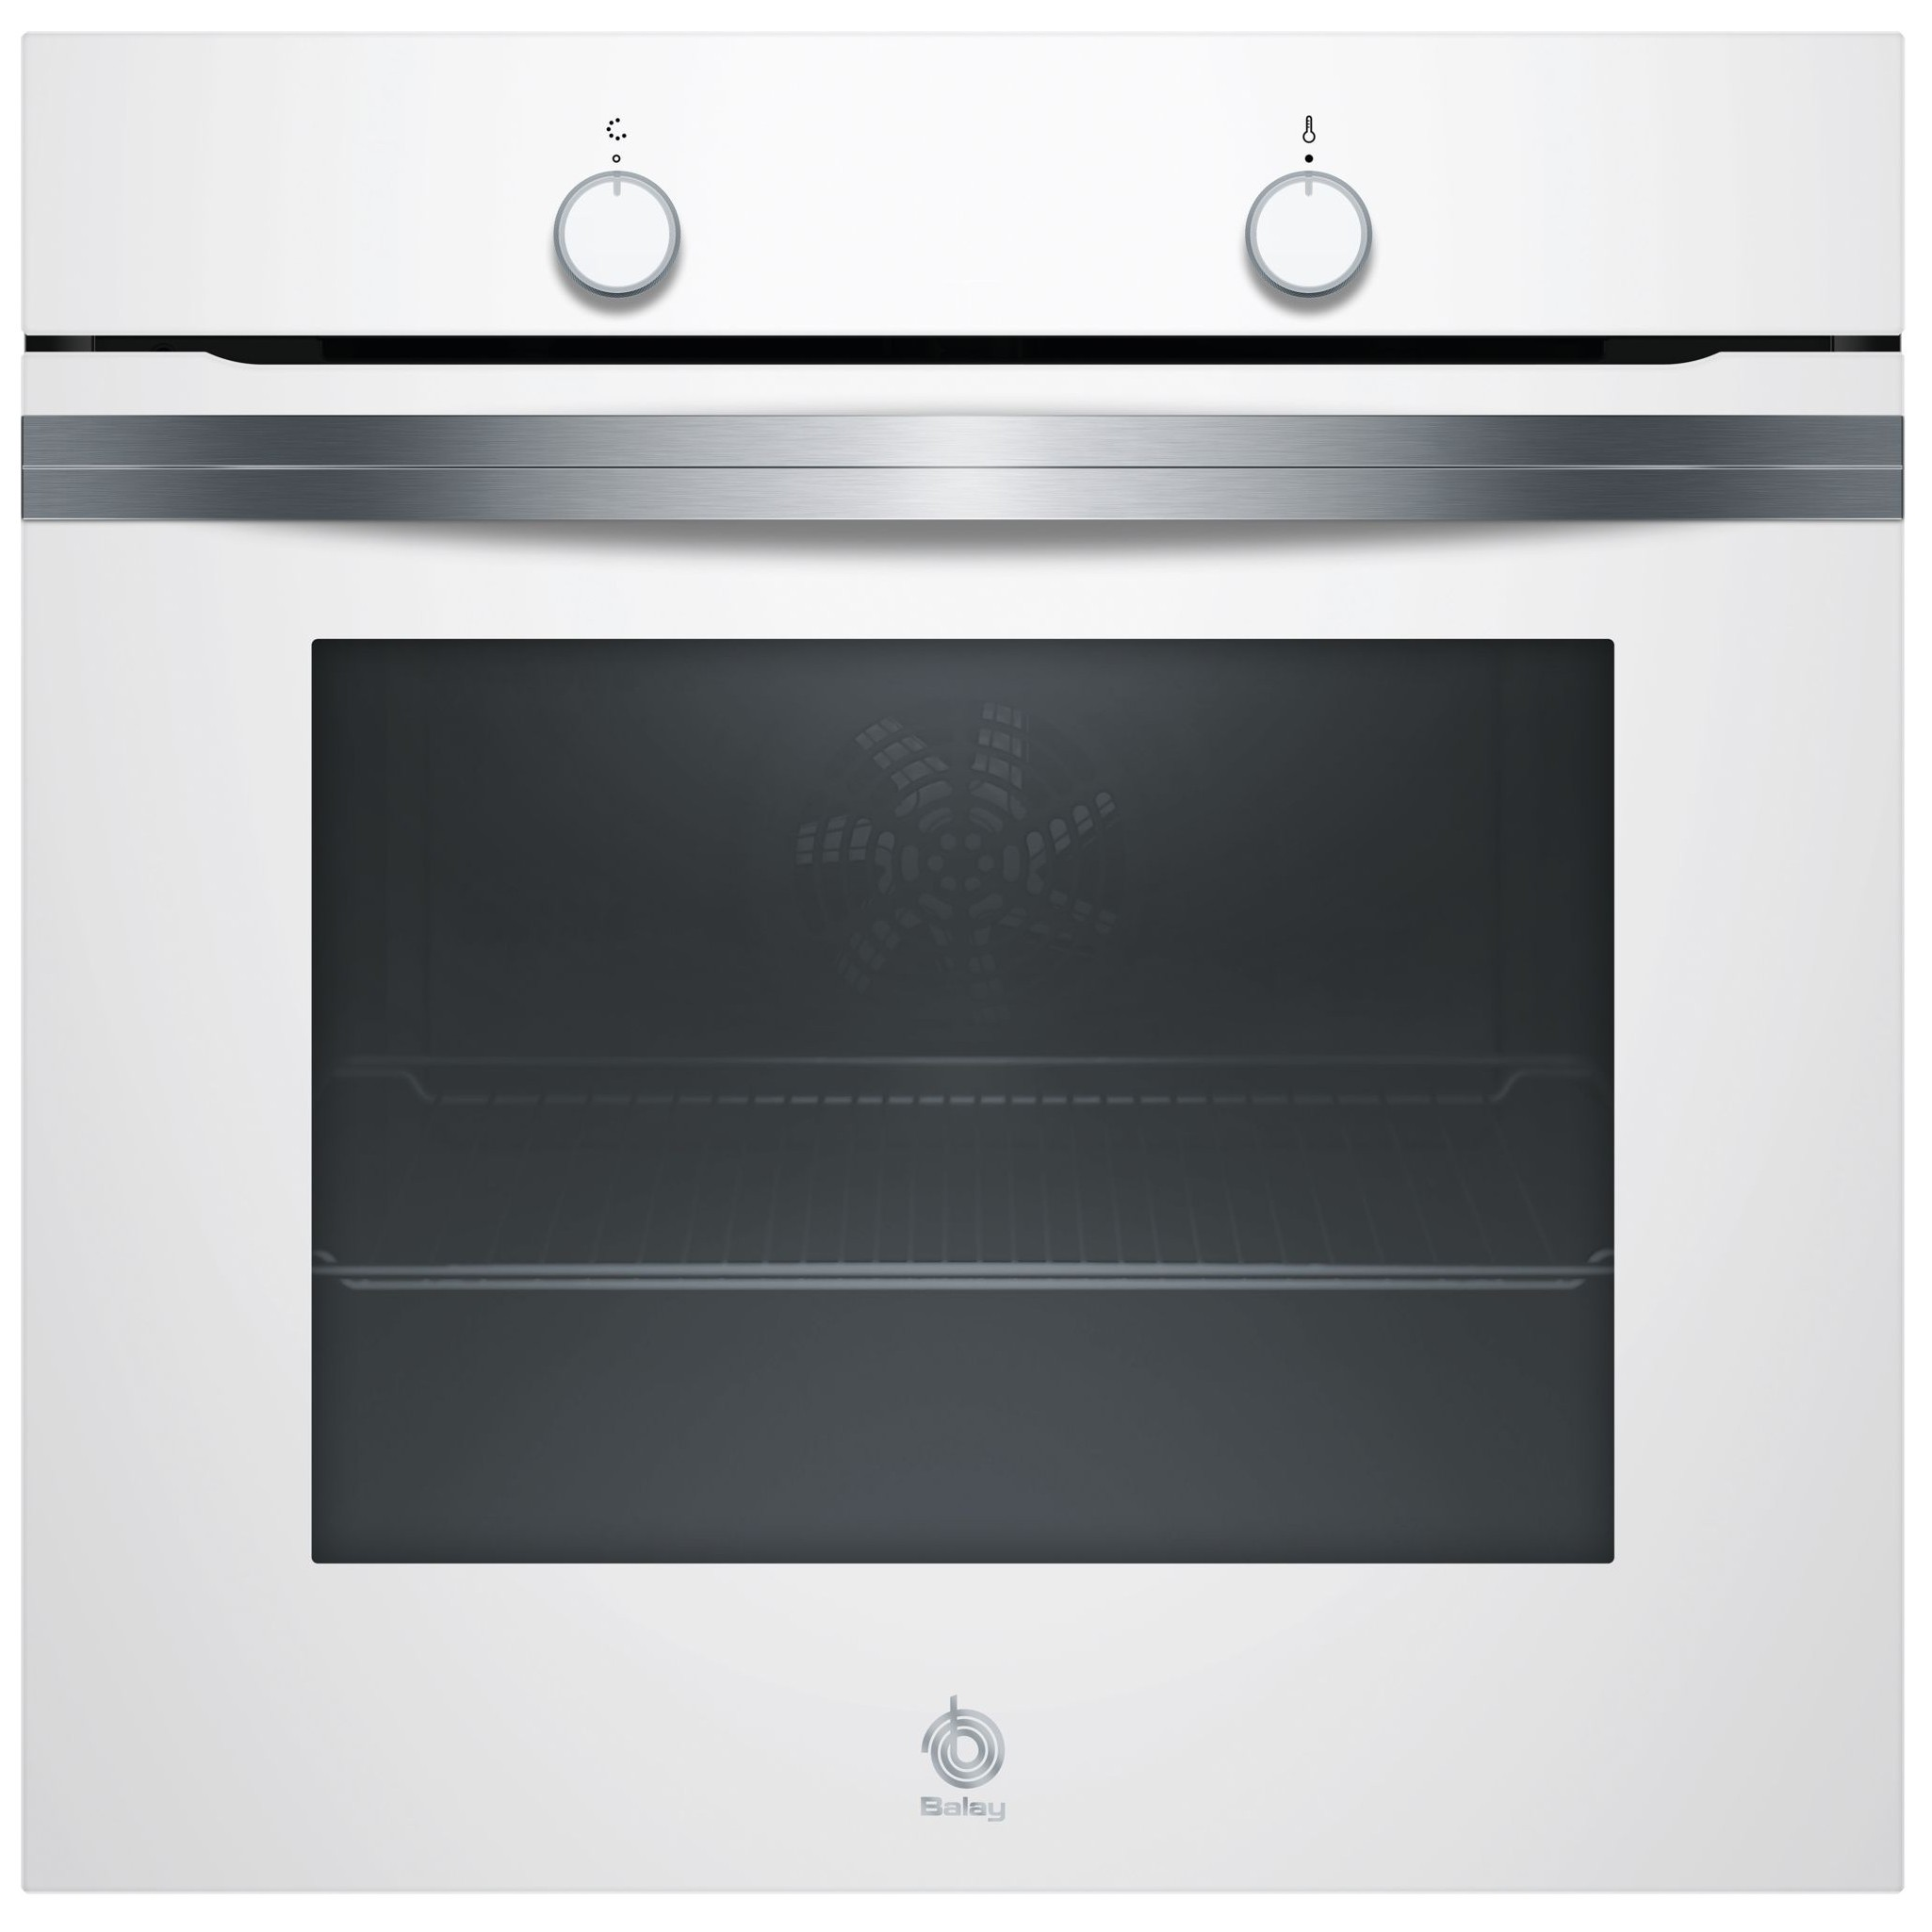 Horno Balay 3hb5000b1 Independiente Multifuncion Cristal Blanco